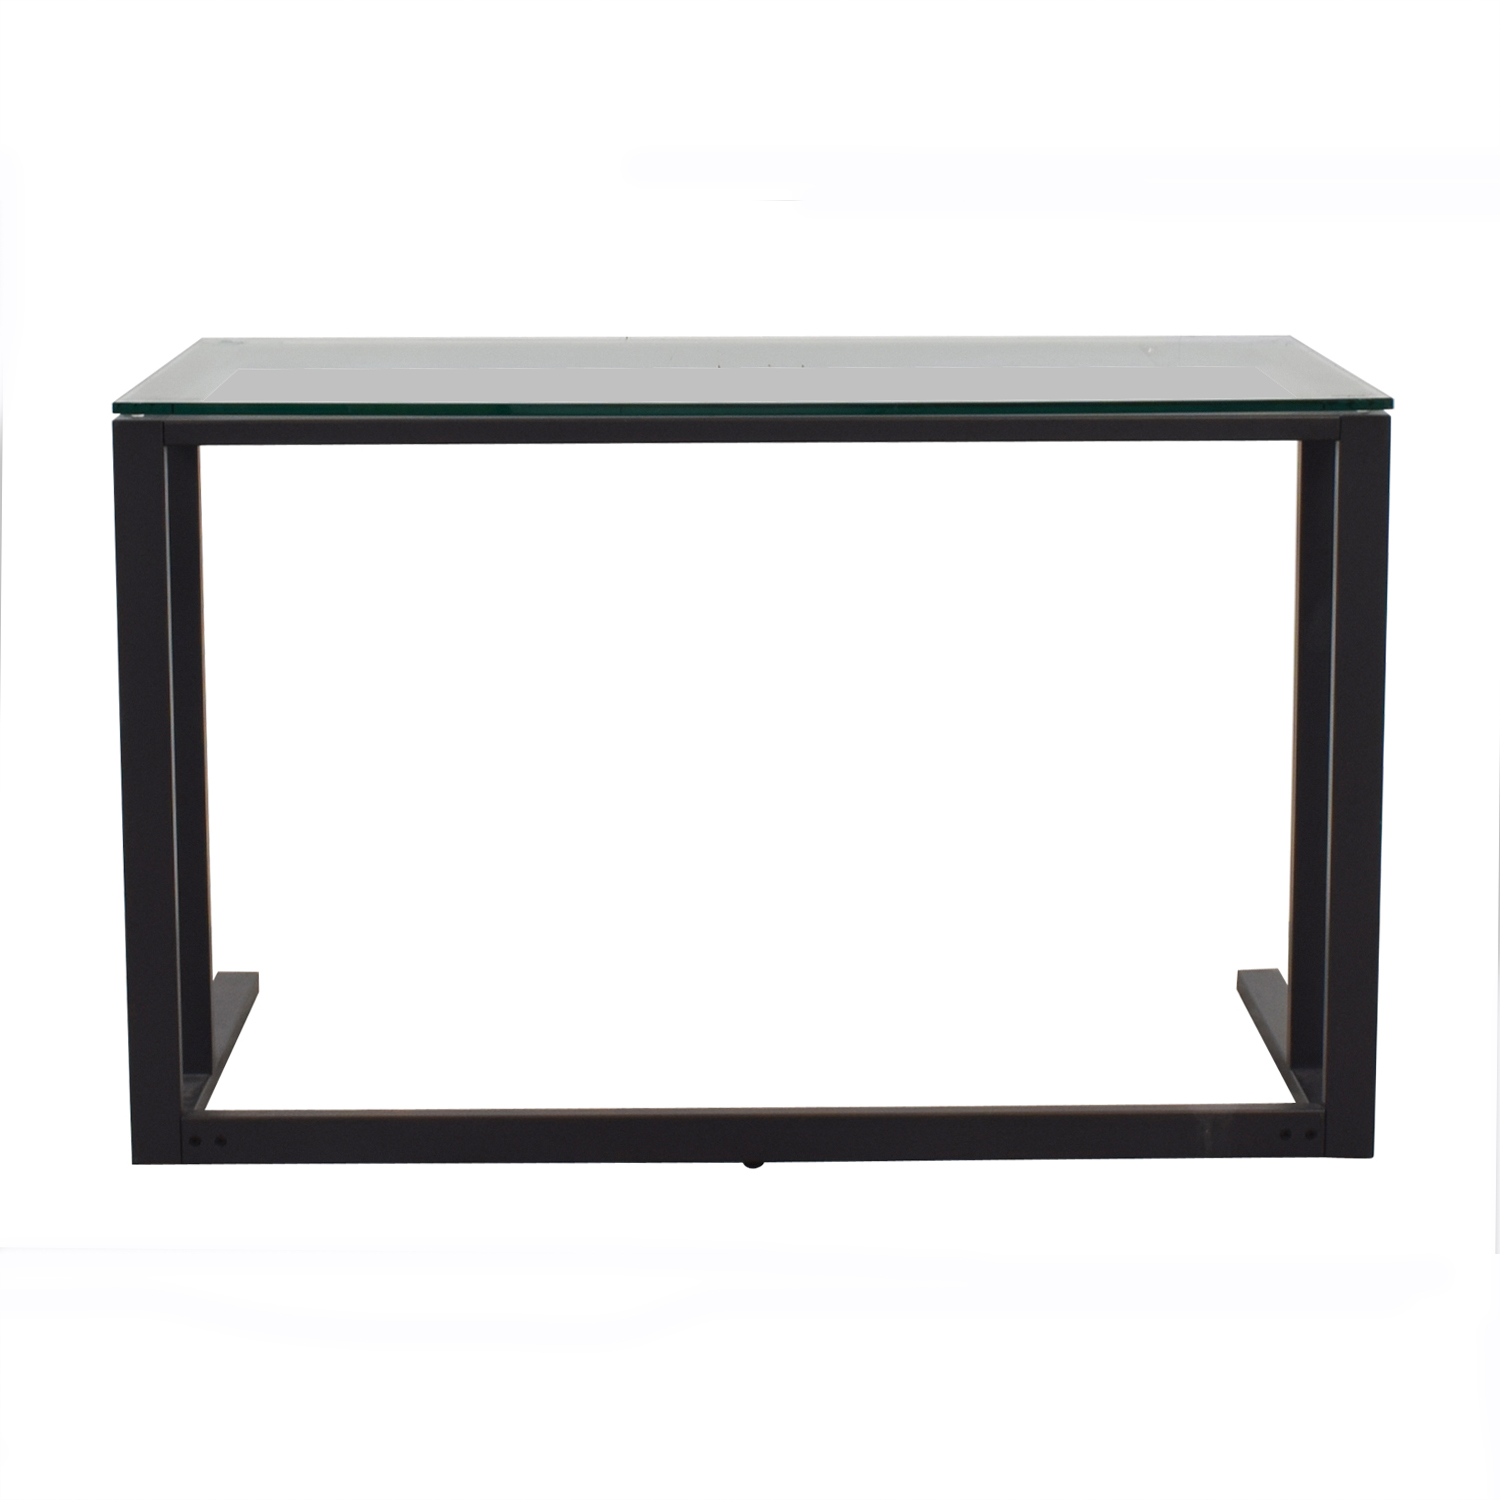 buy Pilsen Graphite Glass and Metal Desk